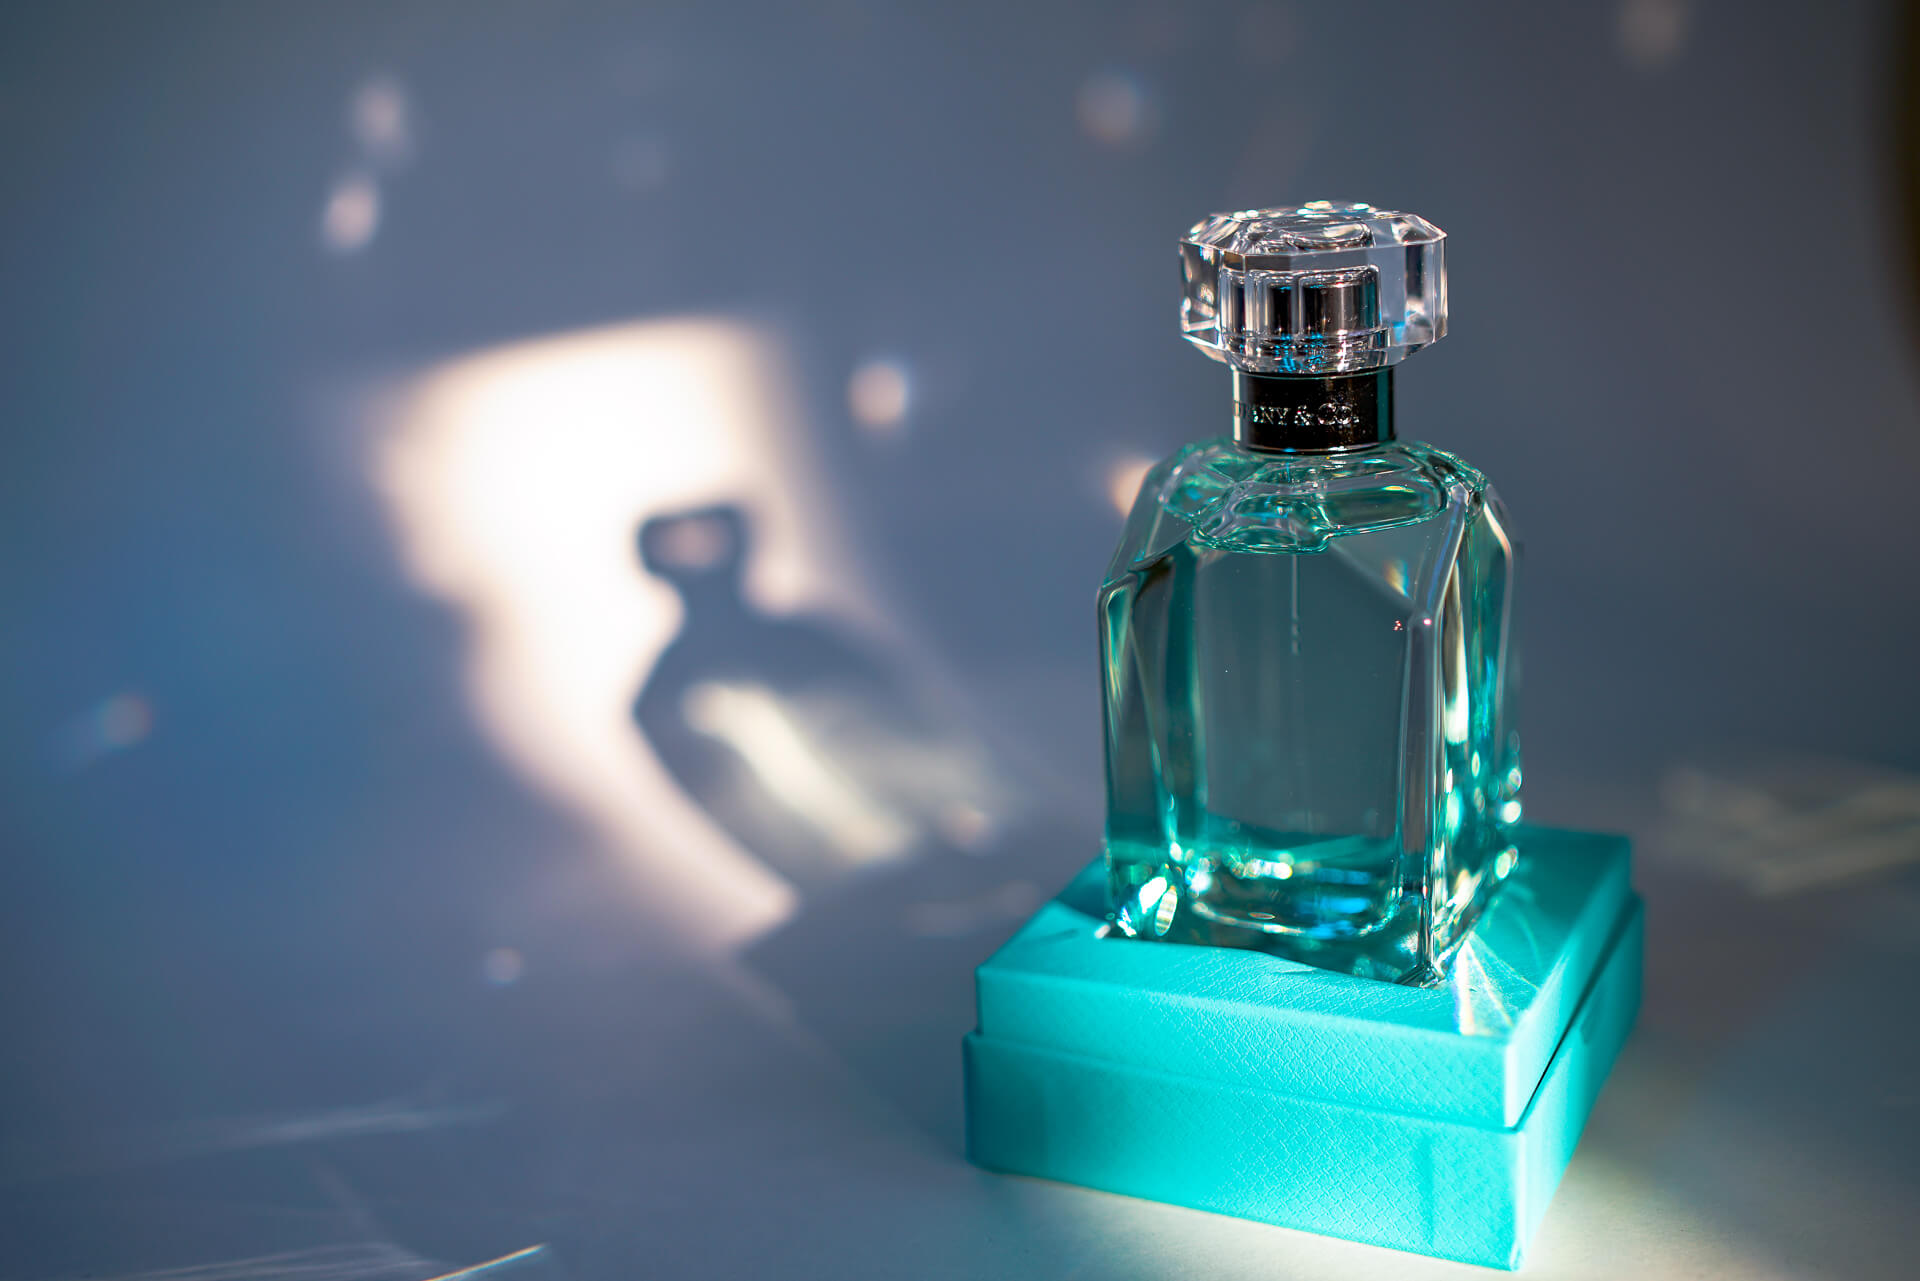 b05fd4b87e0 The Tiffany Eau de Parfum Intense is an exciting new signature fragrance  from Tiffany & Co., which is a modified homage to the original makeup of  one of ...